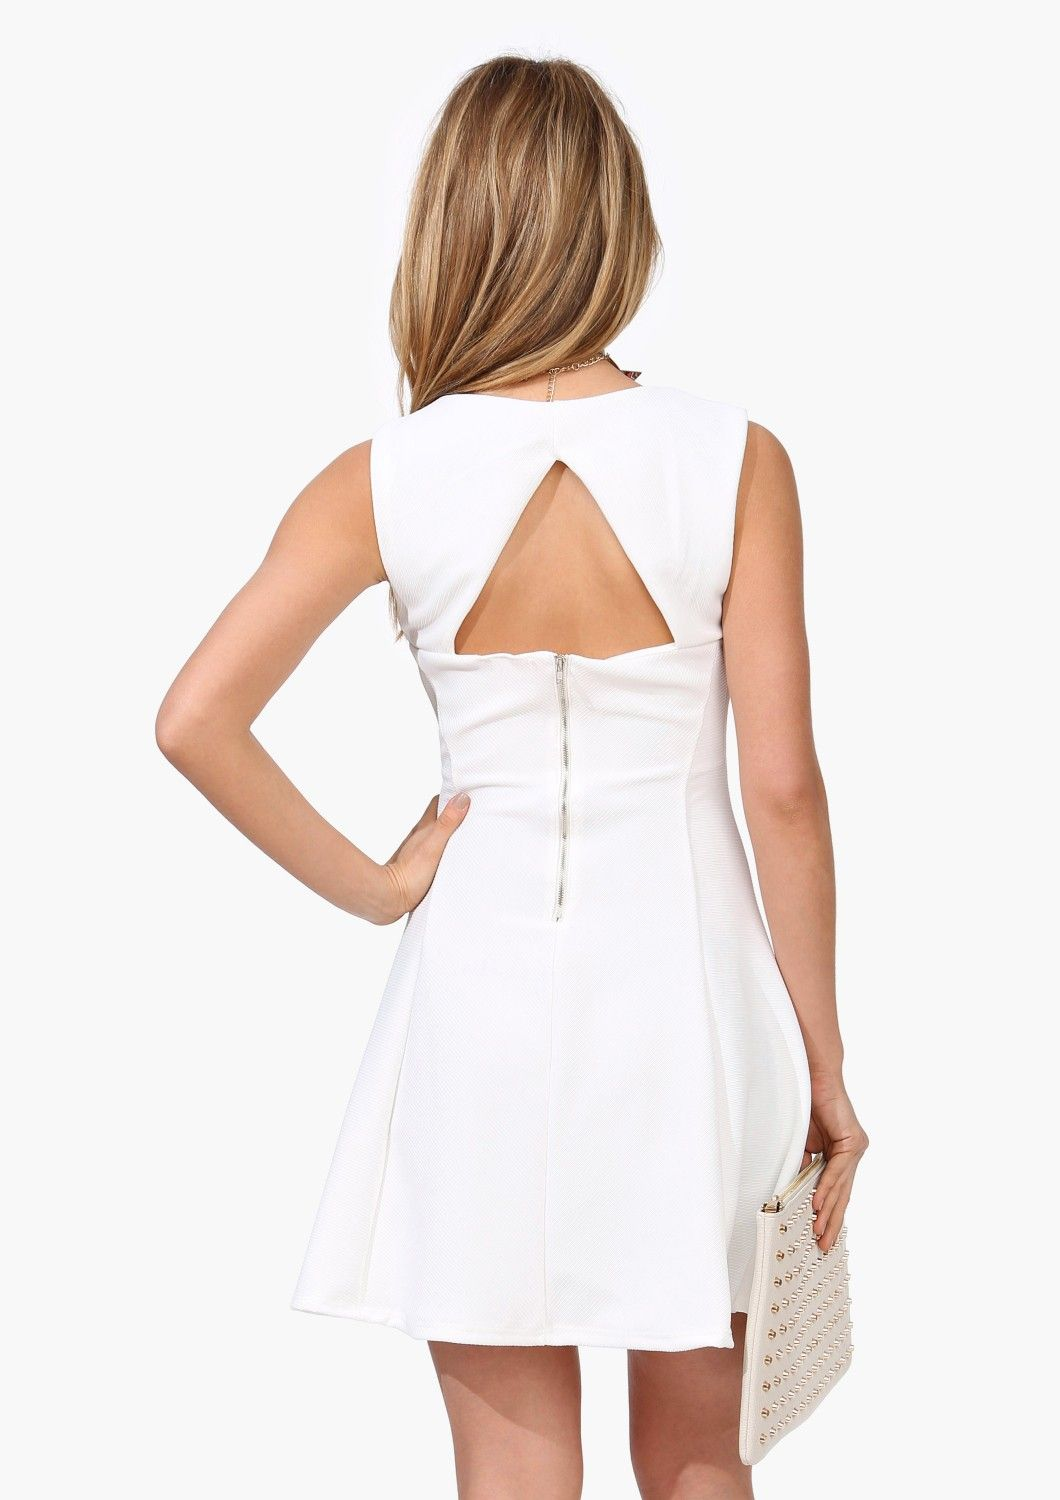 What a super back on this dress, love the triangle.